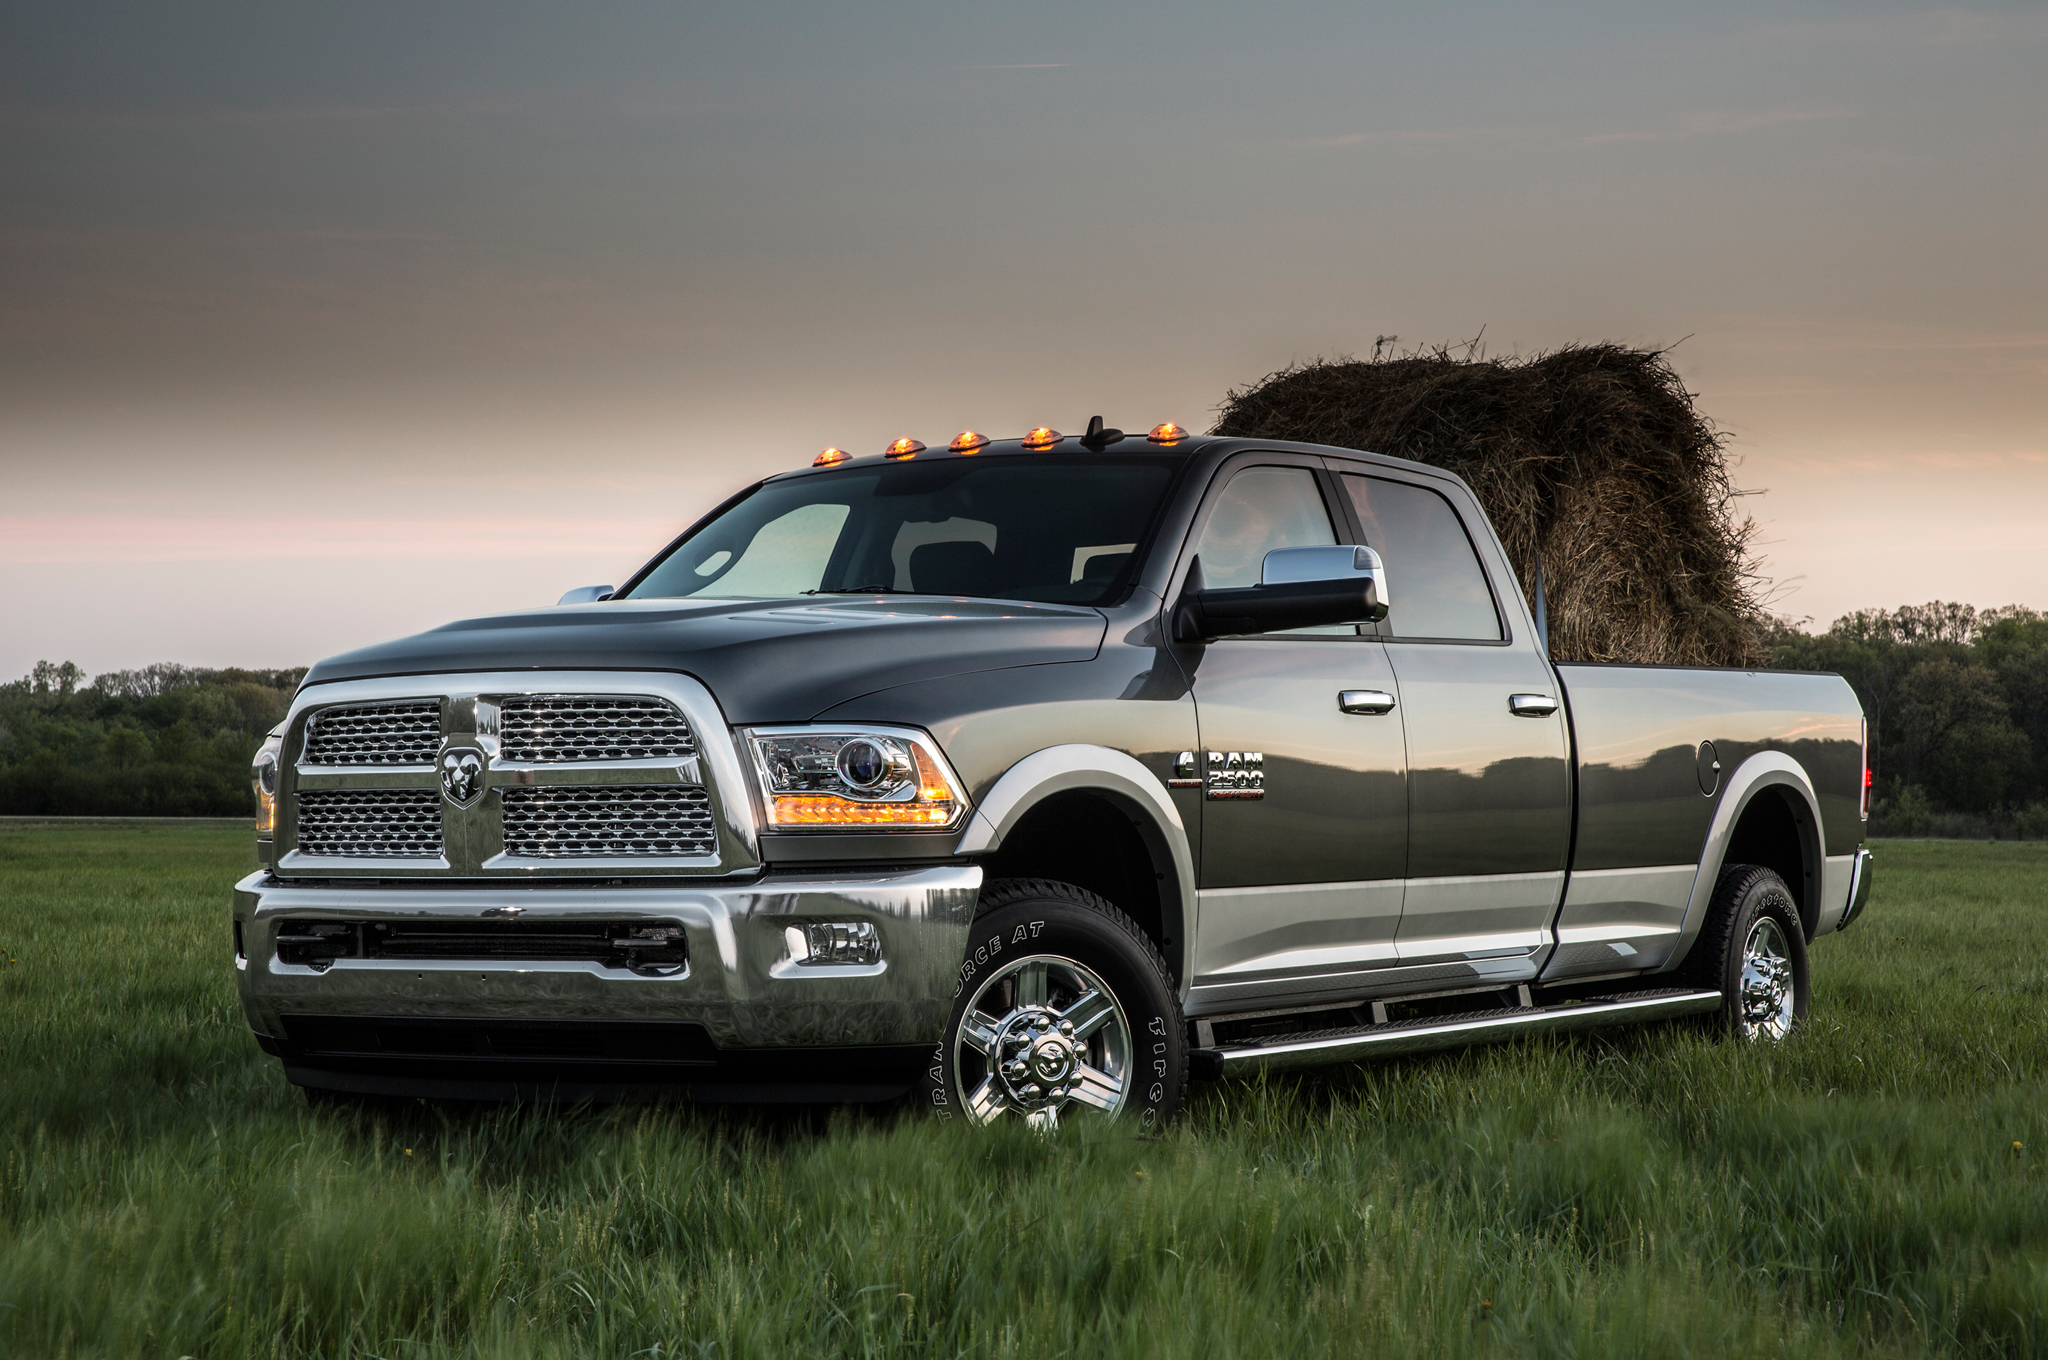 2013 Ram 3500 HD First Drive